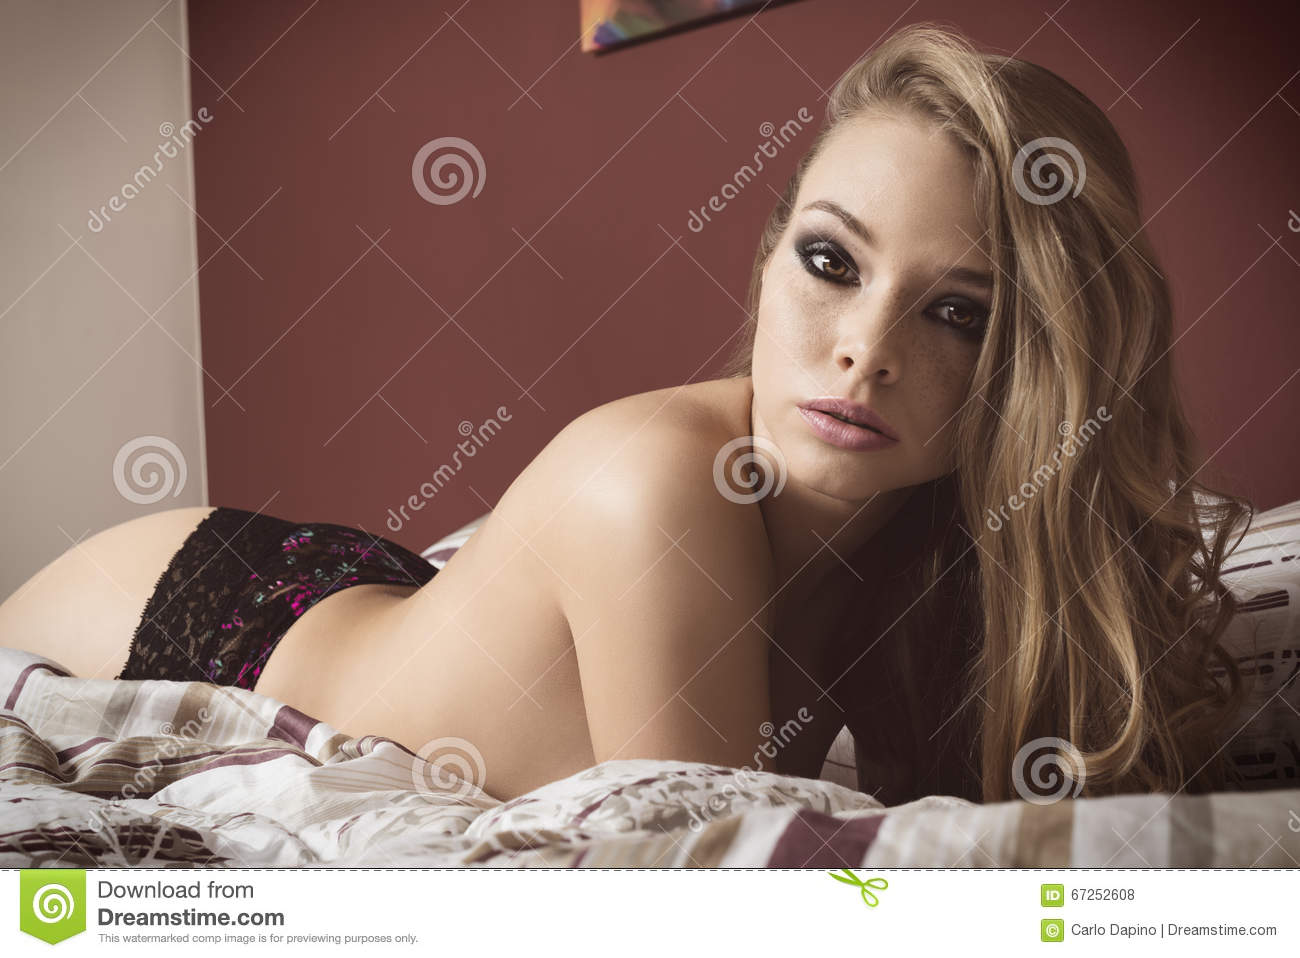 Blonde hair laying on couch naked pity, that